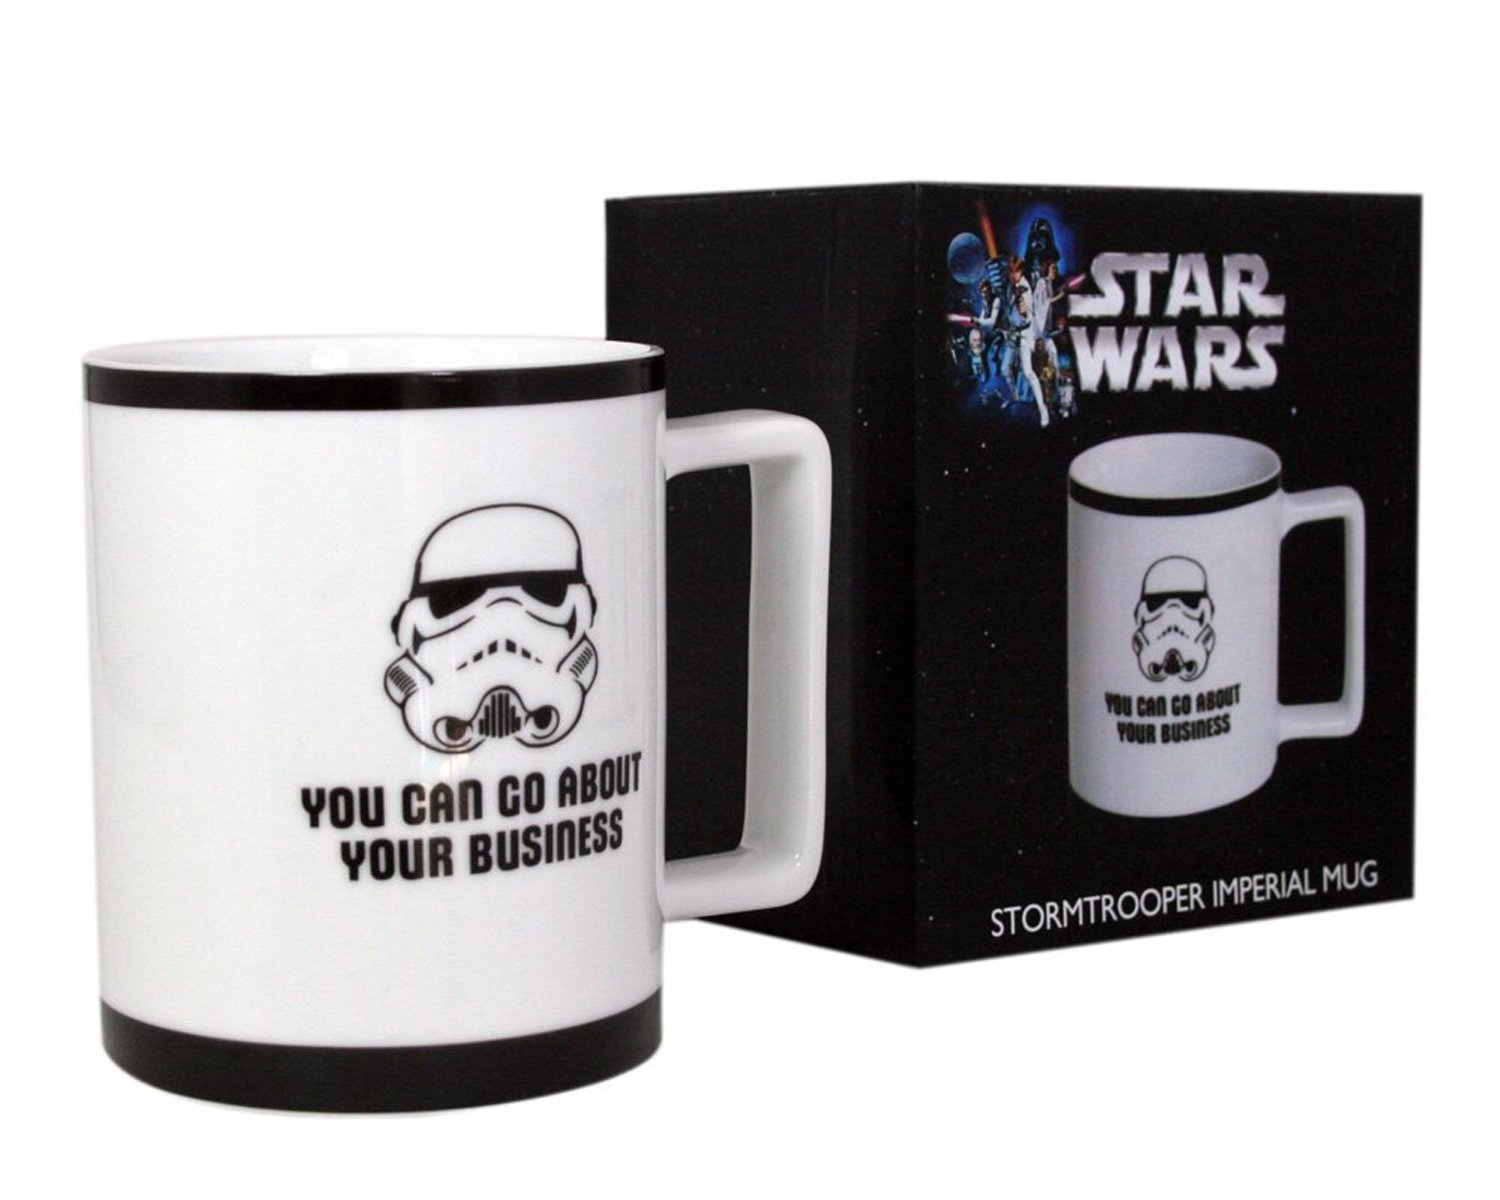 50 best star wars gift ideas to find in a galaxy far far away